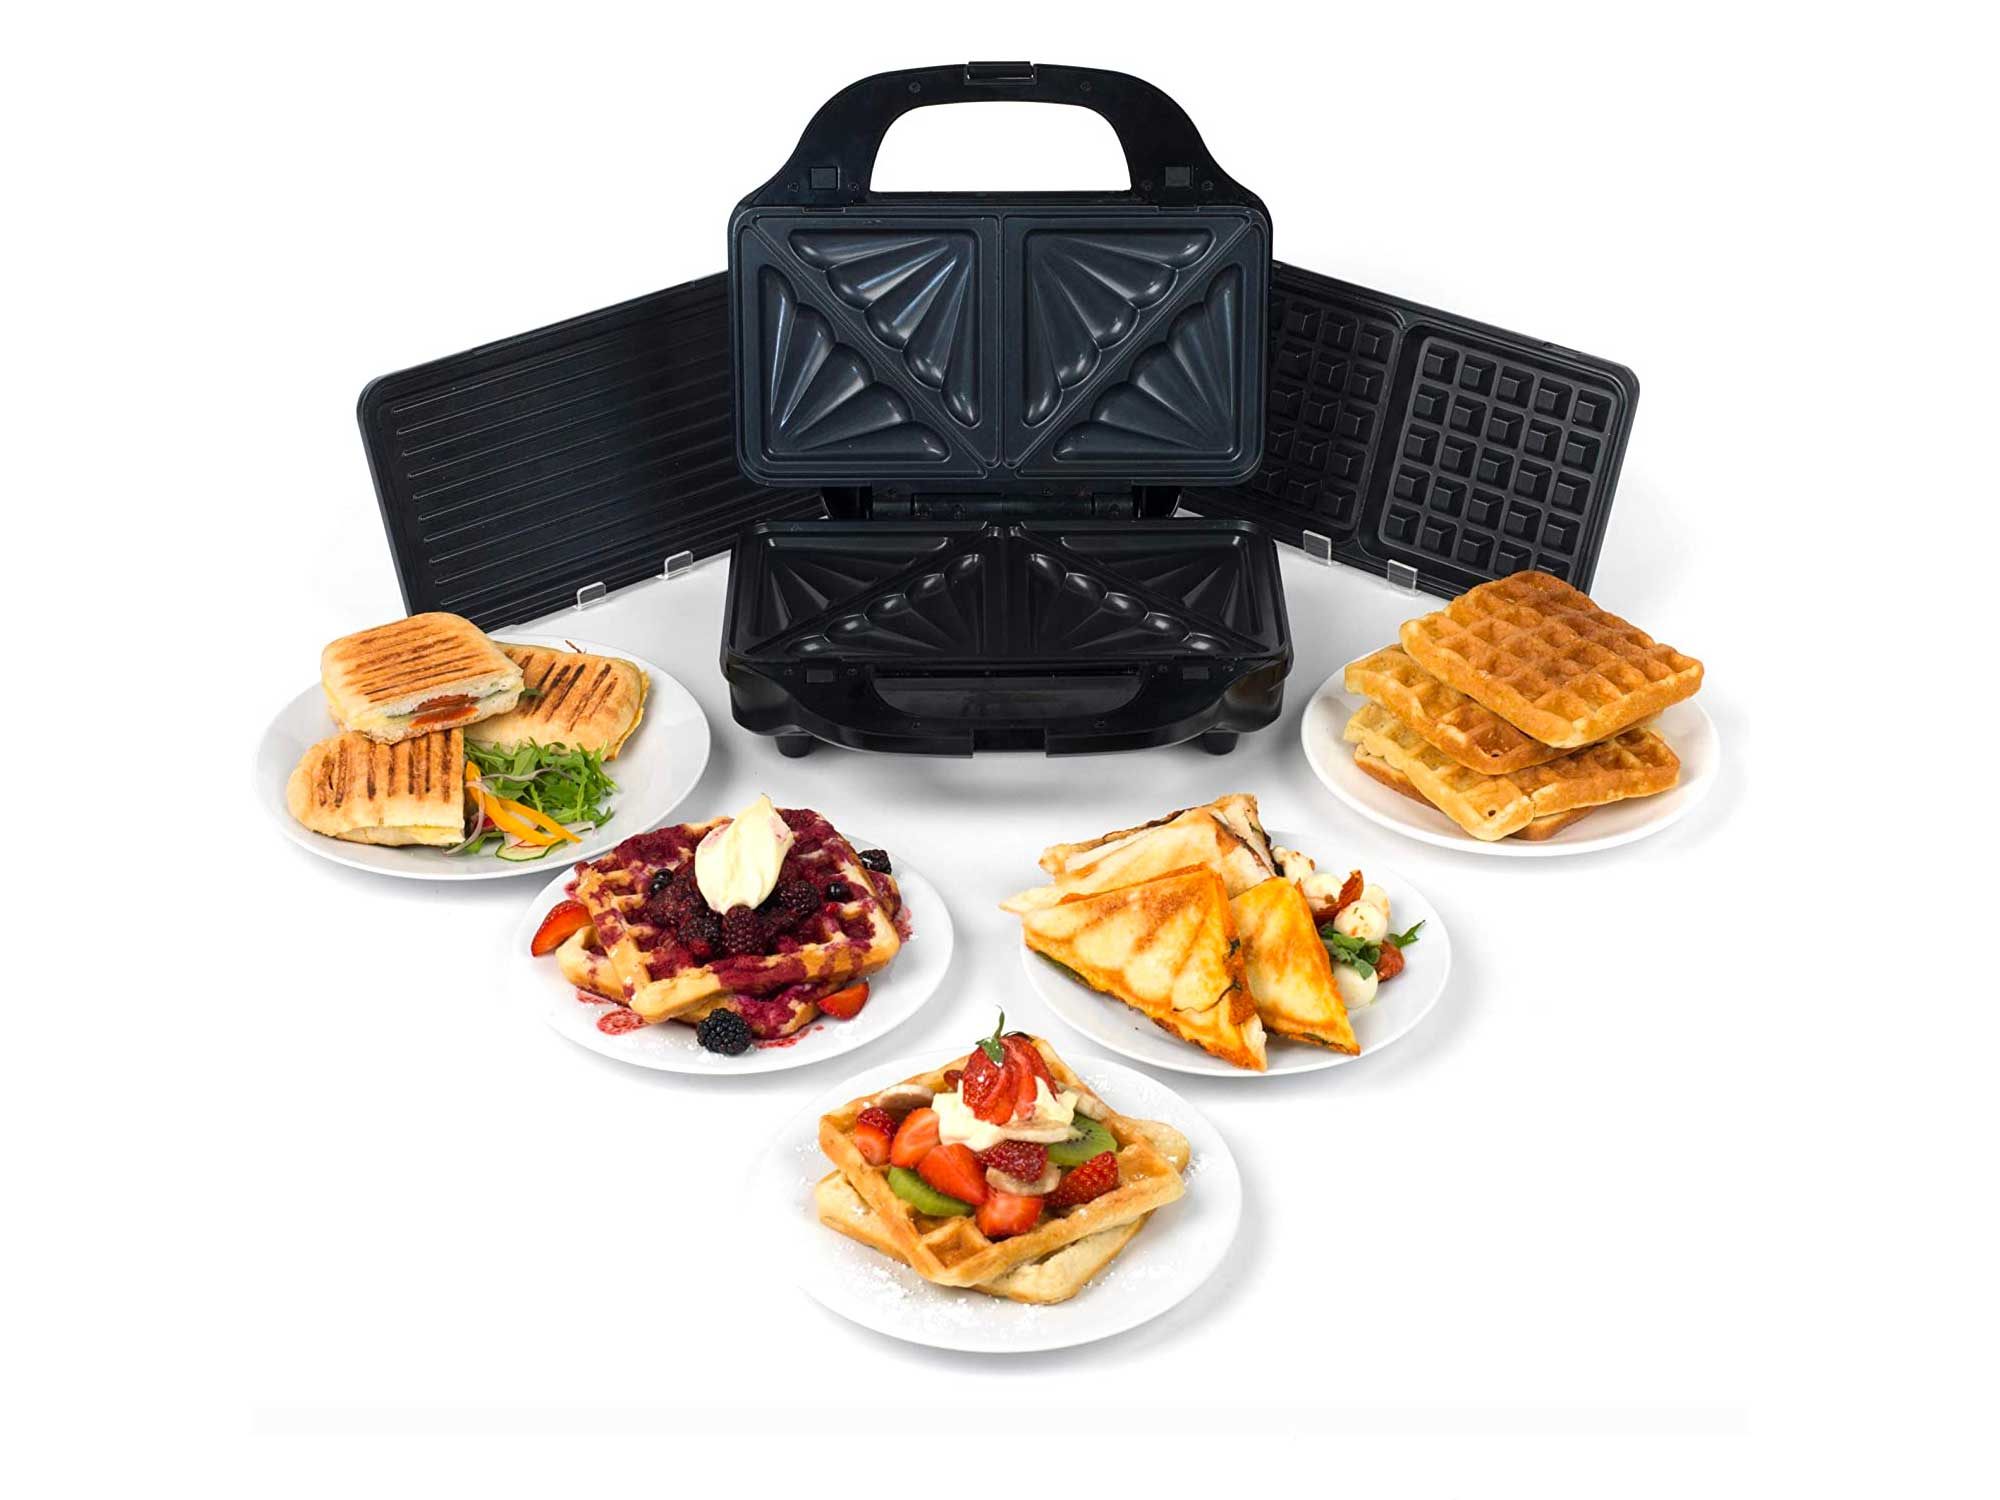 Salter Deep Fill 3-in-1 Snack Maker with Interchangeable Waffle, Panini and Toasted Sandwich Plates